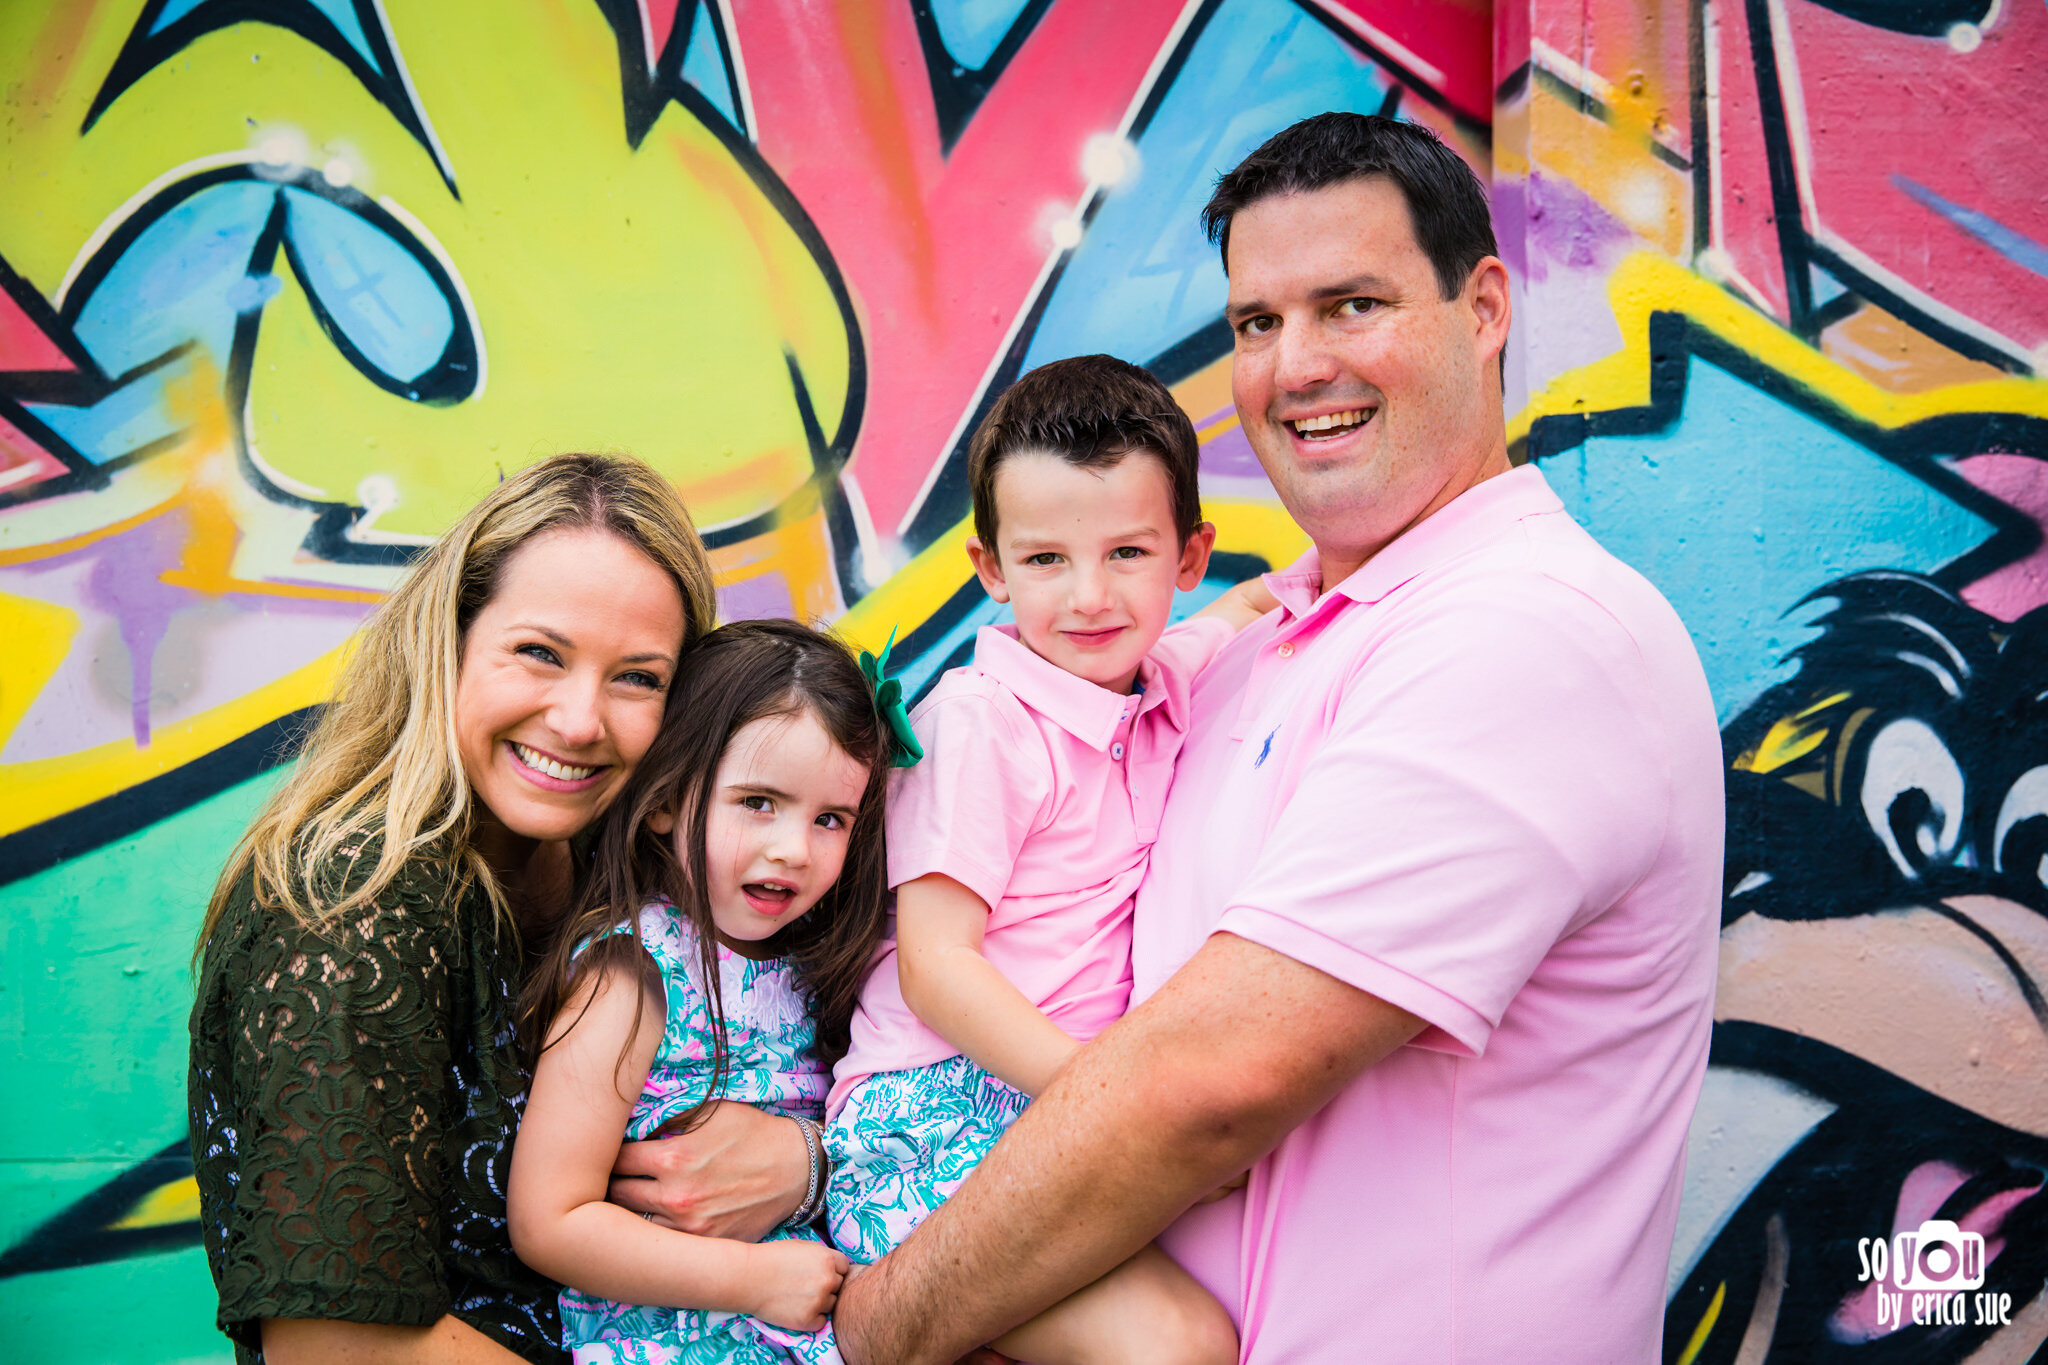 so-you-by-erica-fat-village-ft-lauderdale-murals-lifestyle-family-photographer-6830.JPG